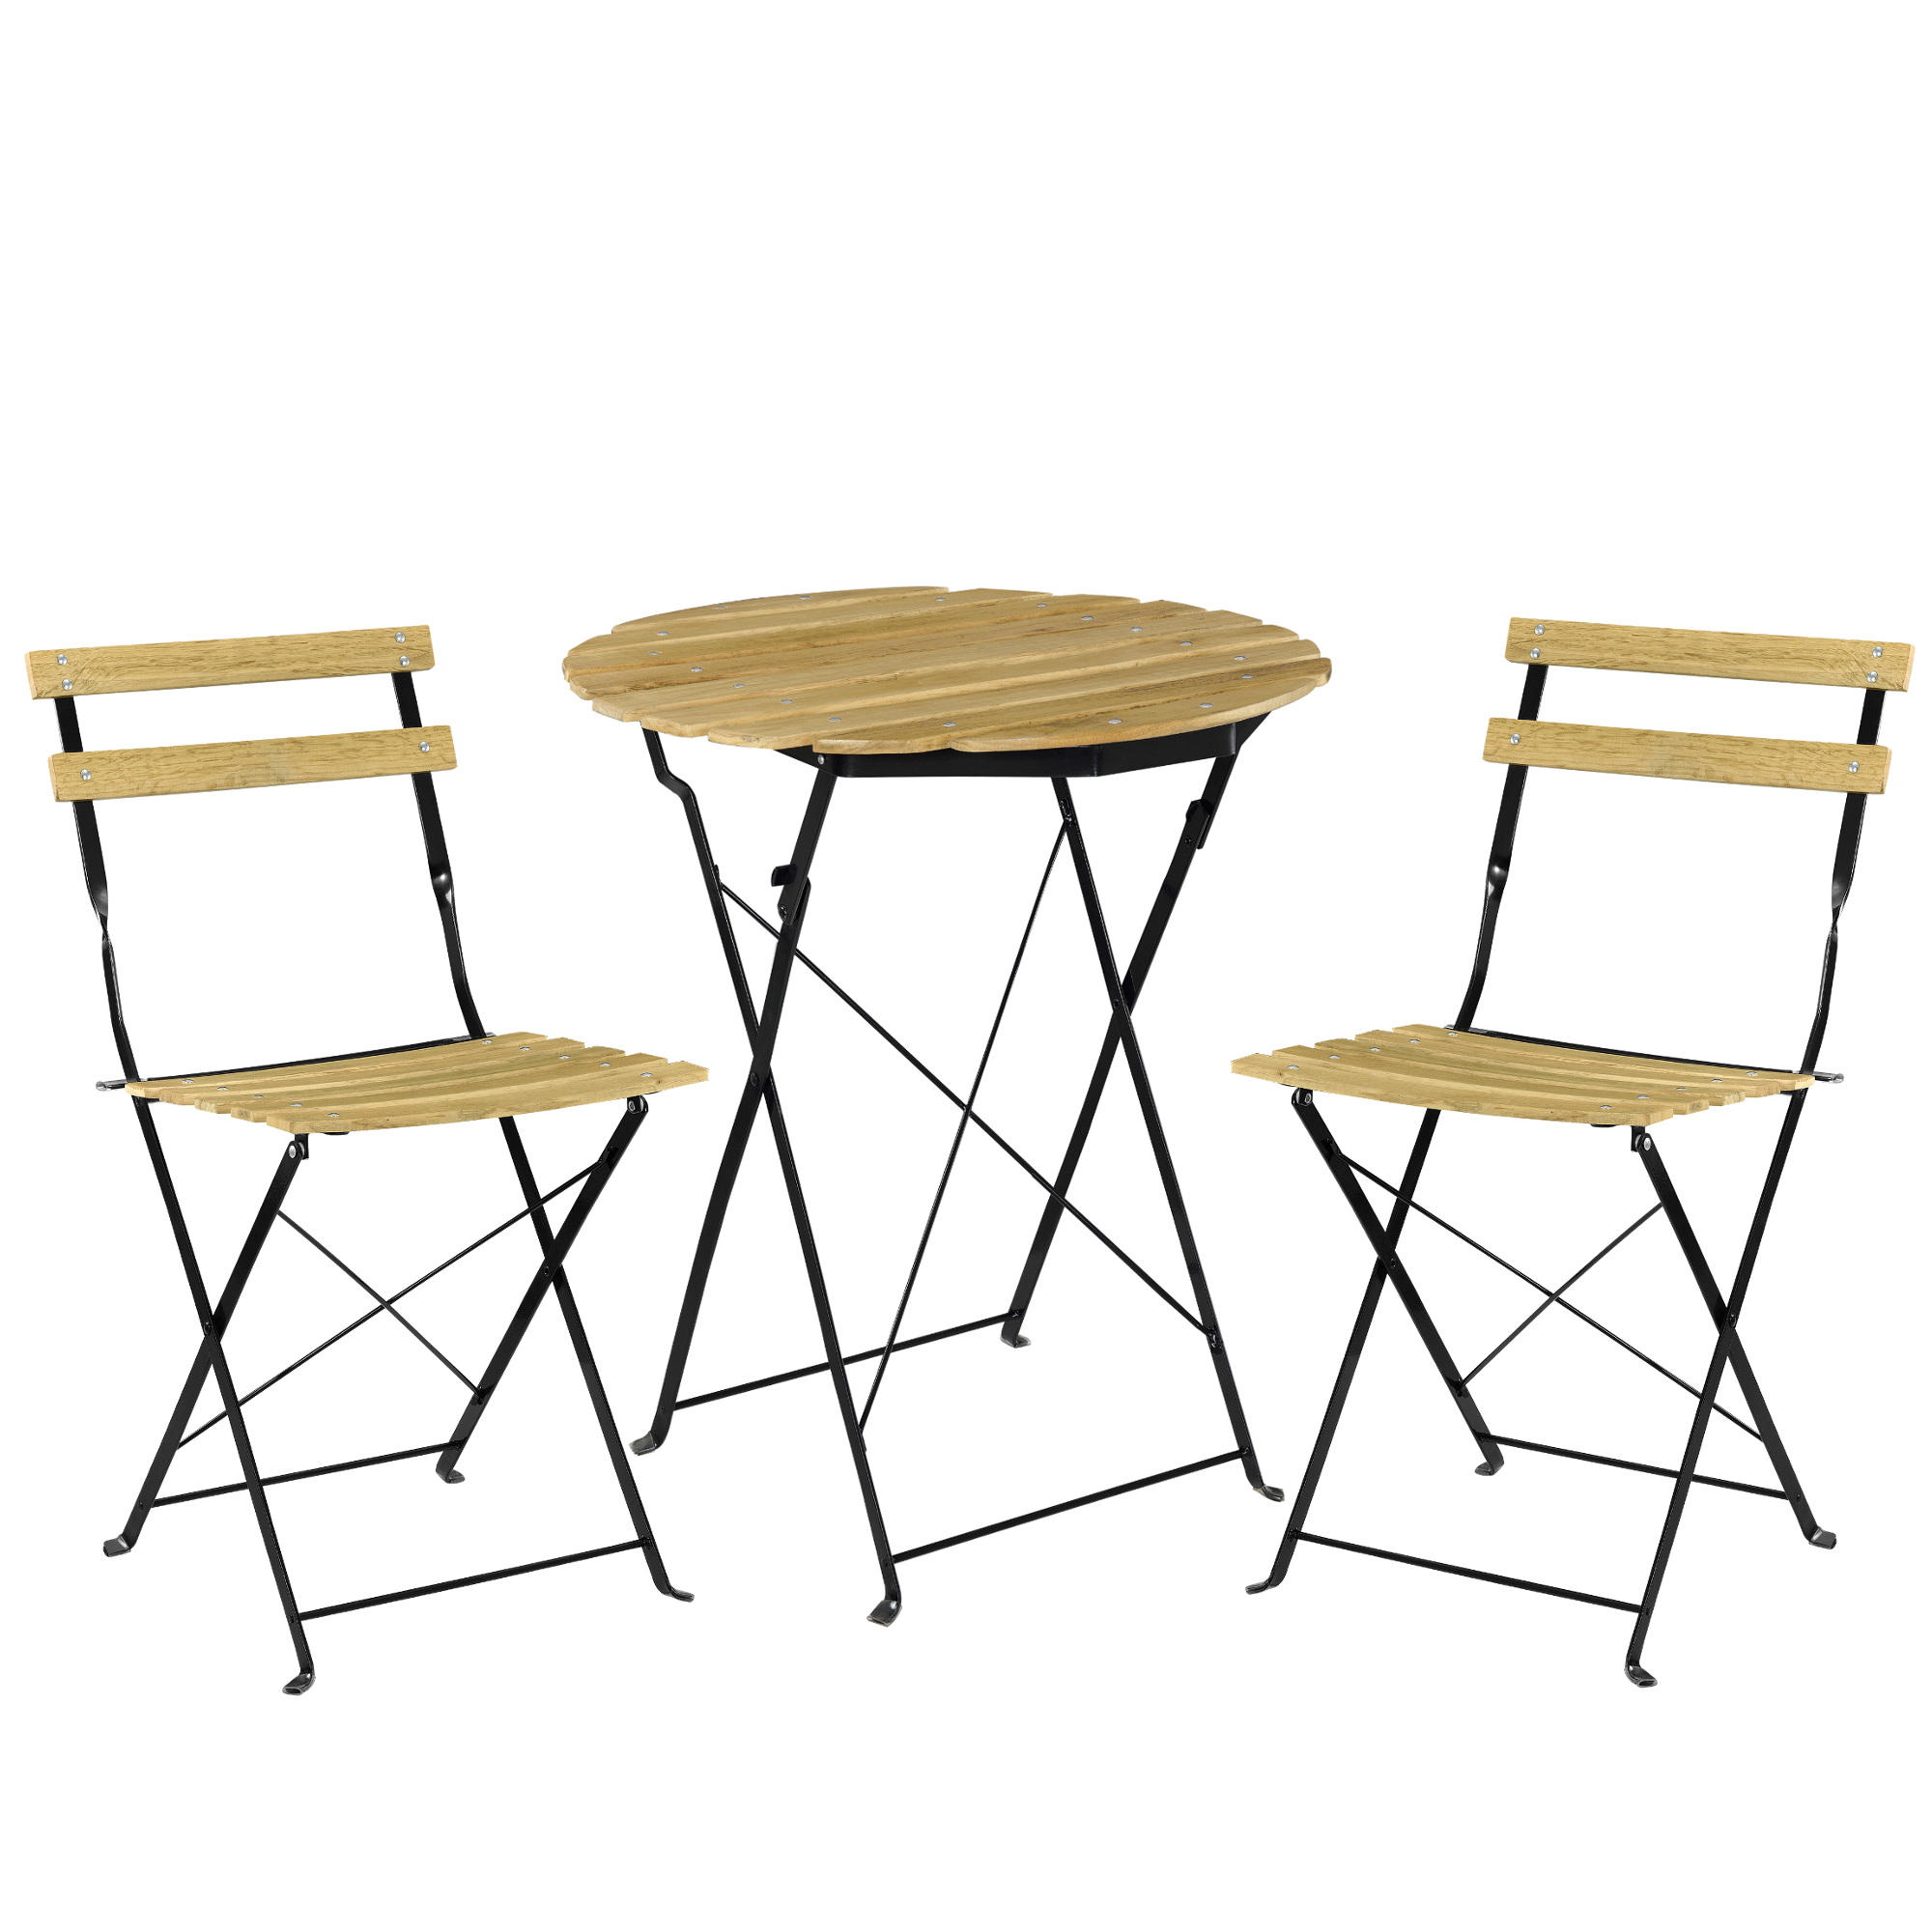 Bistro set table 2 chairs dining area seating - Casa mobilier jardin ...